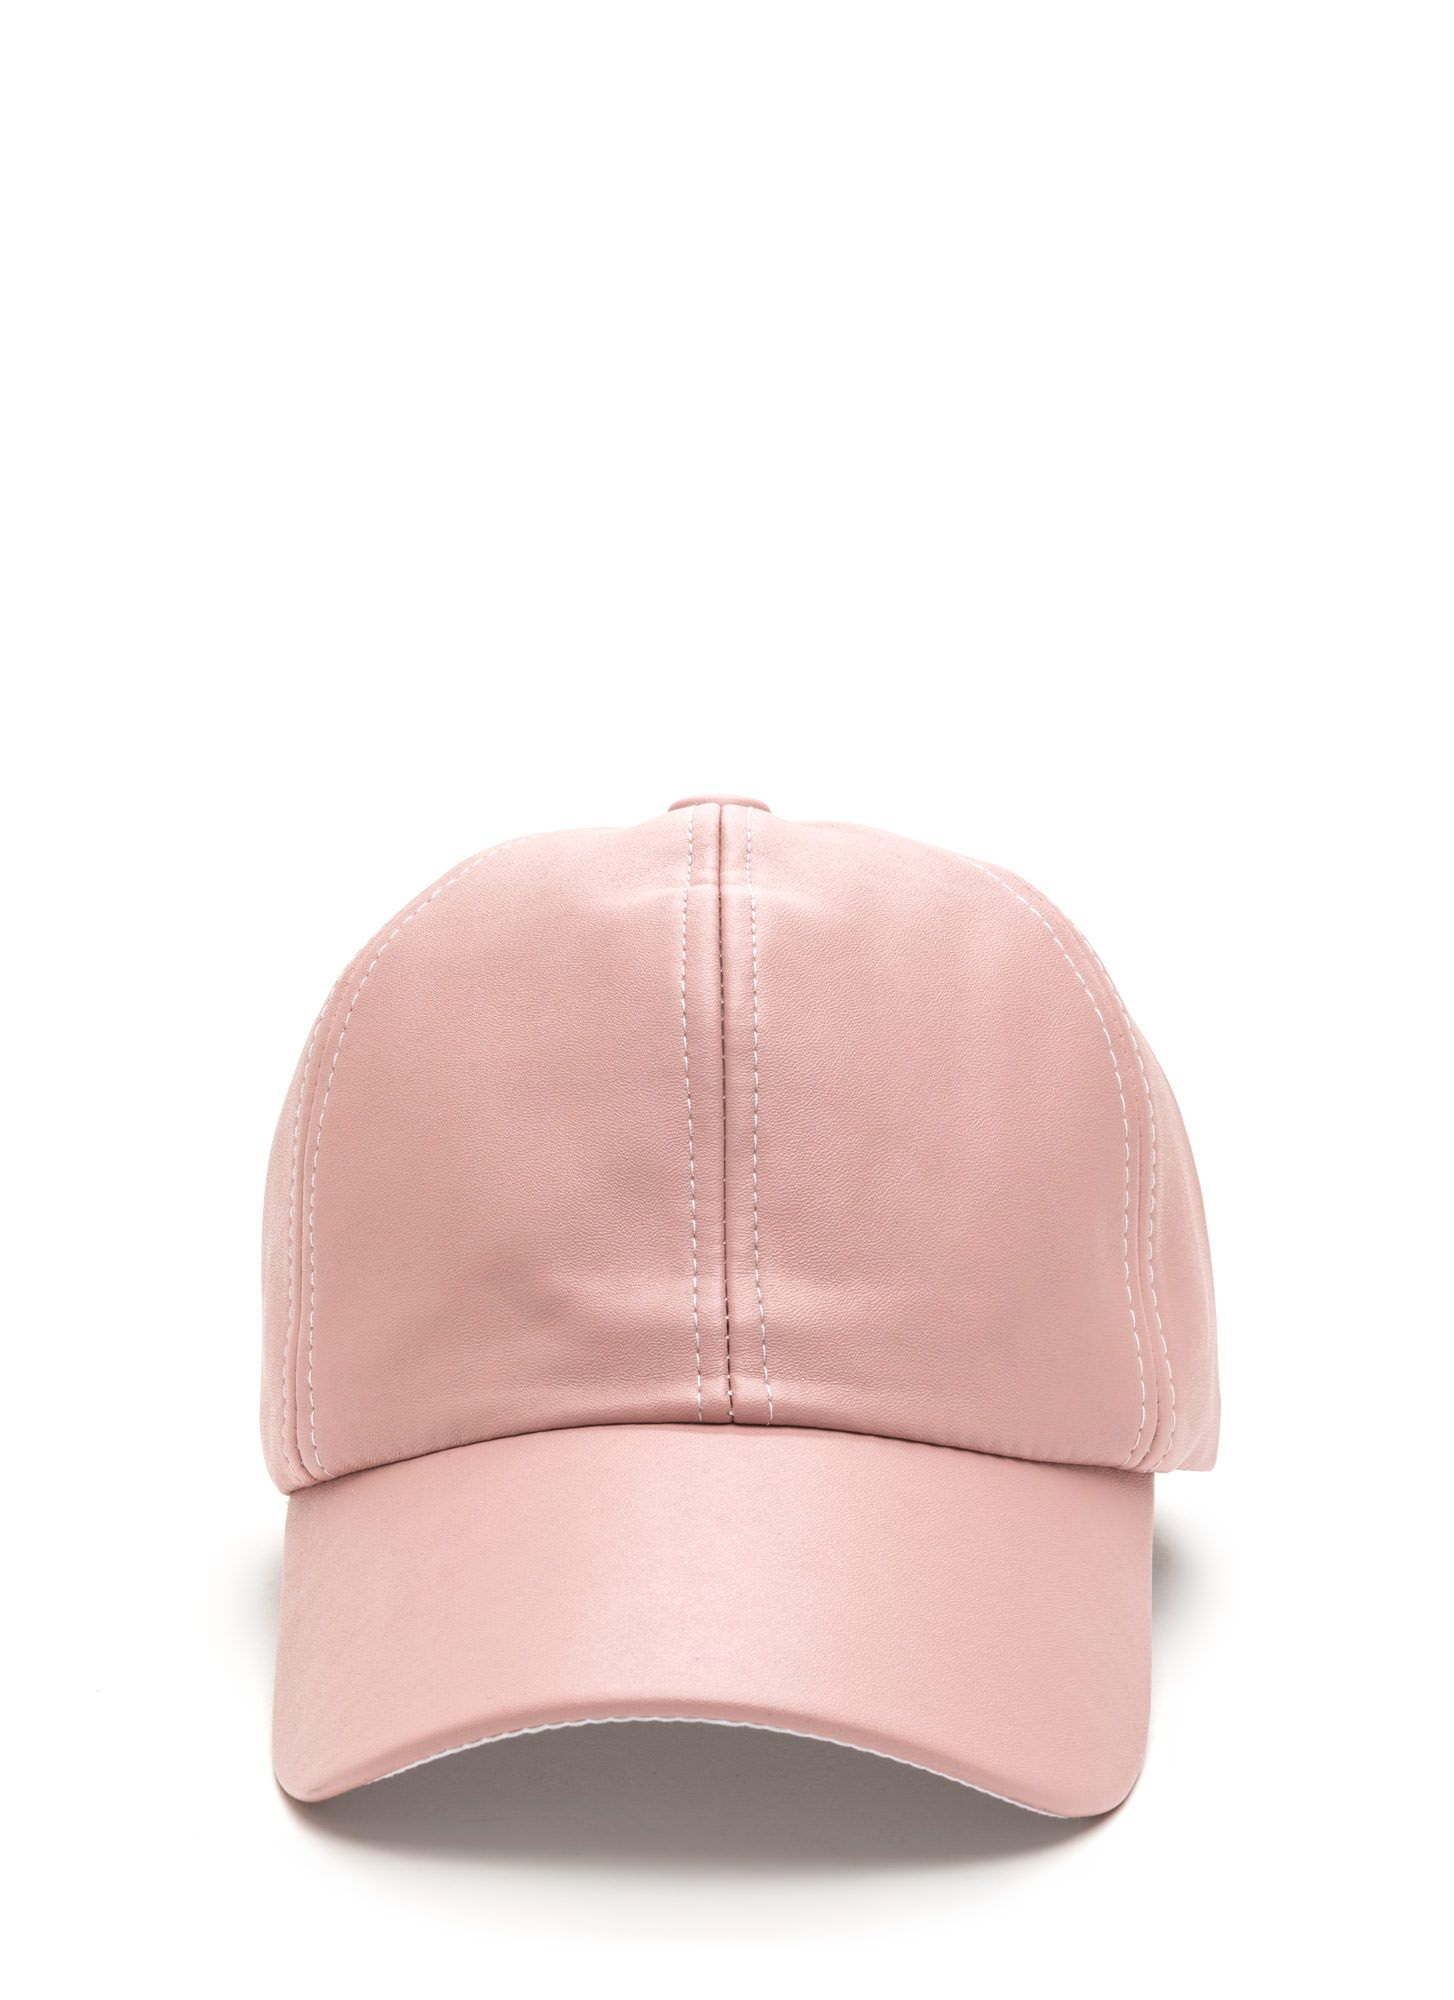 8c135367b1911 Smooth Talker Faux Leather Cap BLACK WHITE DUSTYPINK NUDE GREY SILVER CAMEL  GOLD - GoJane.com